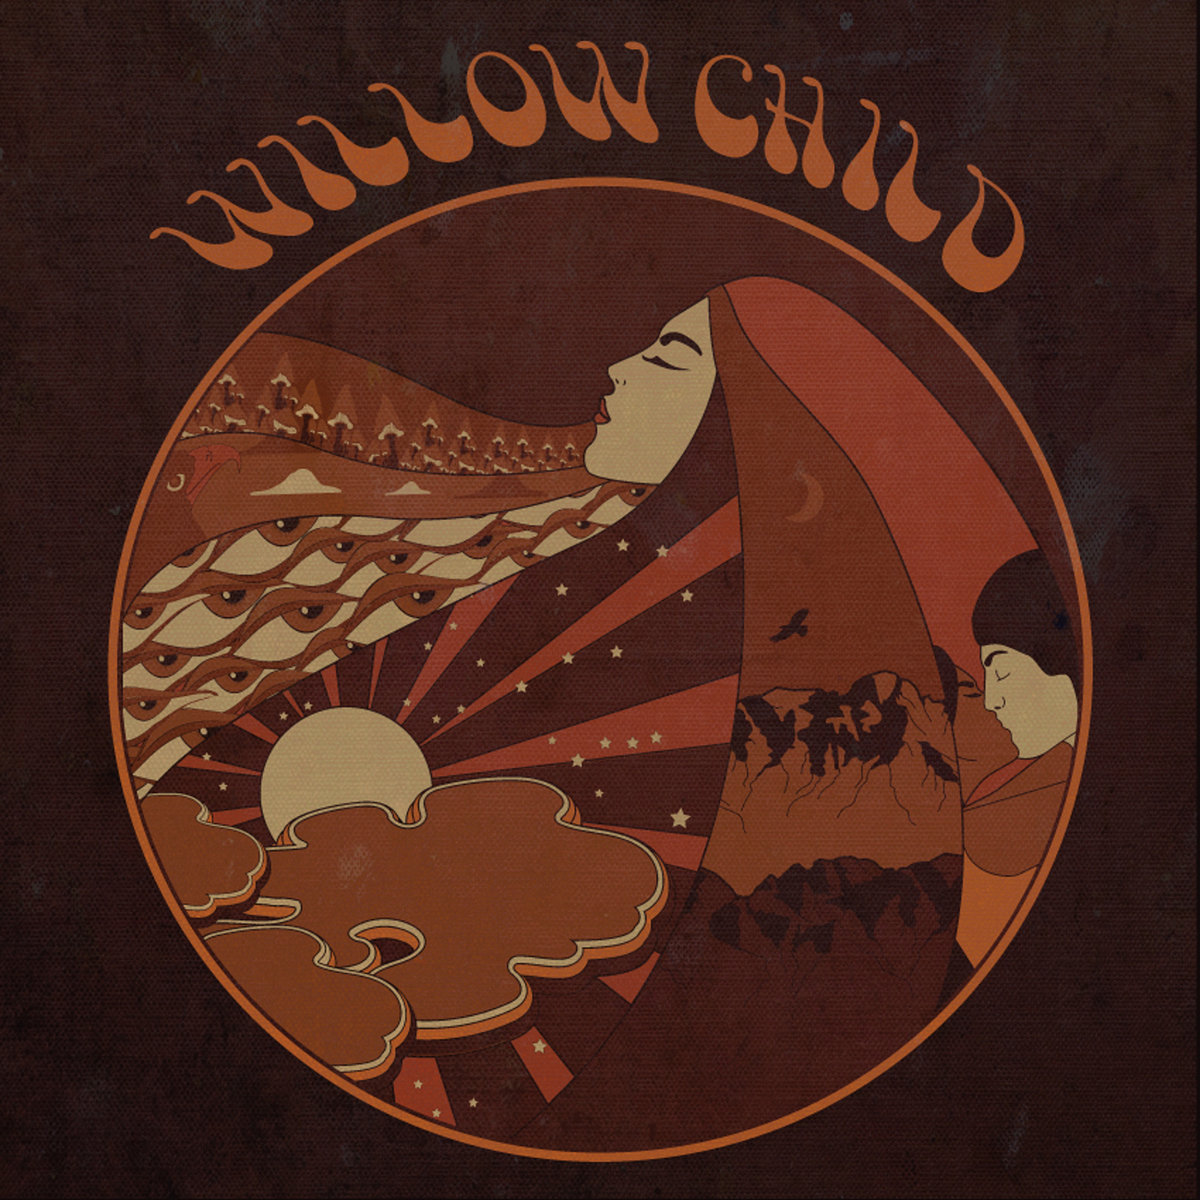 willow-child-trip-down-memory-lane